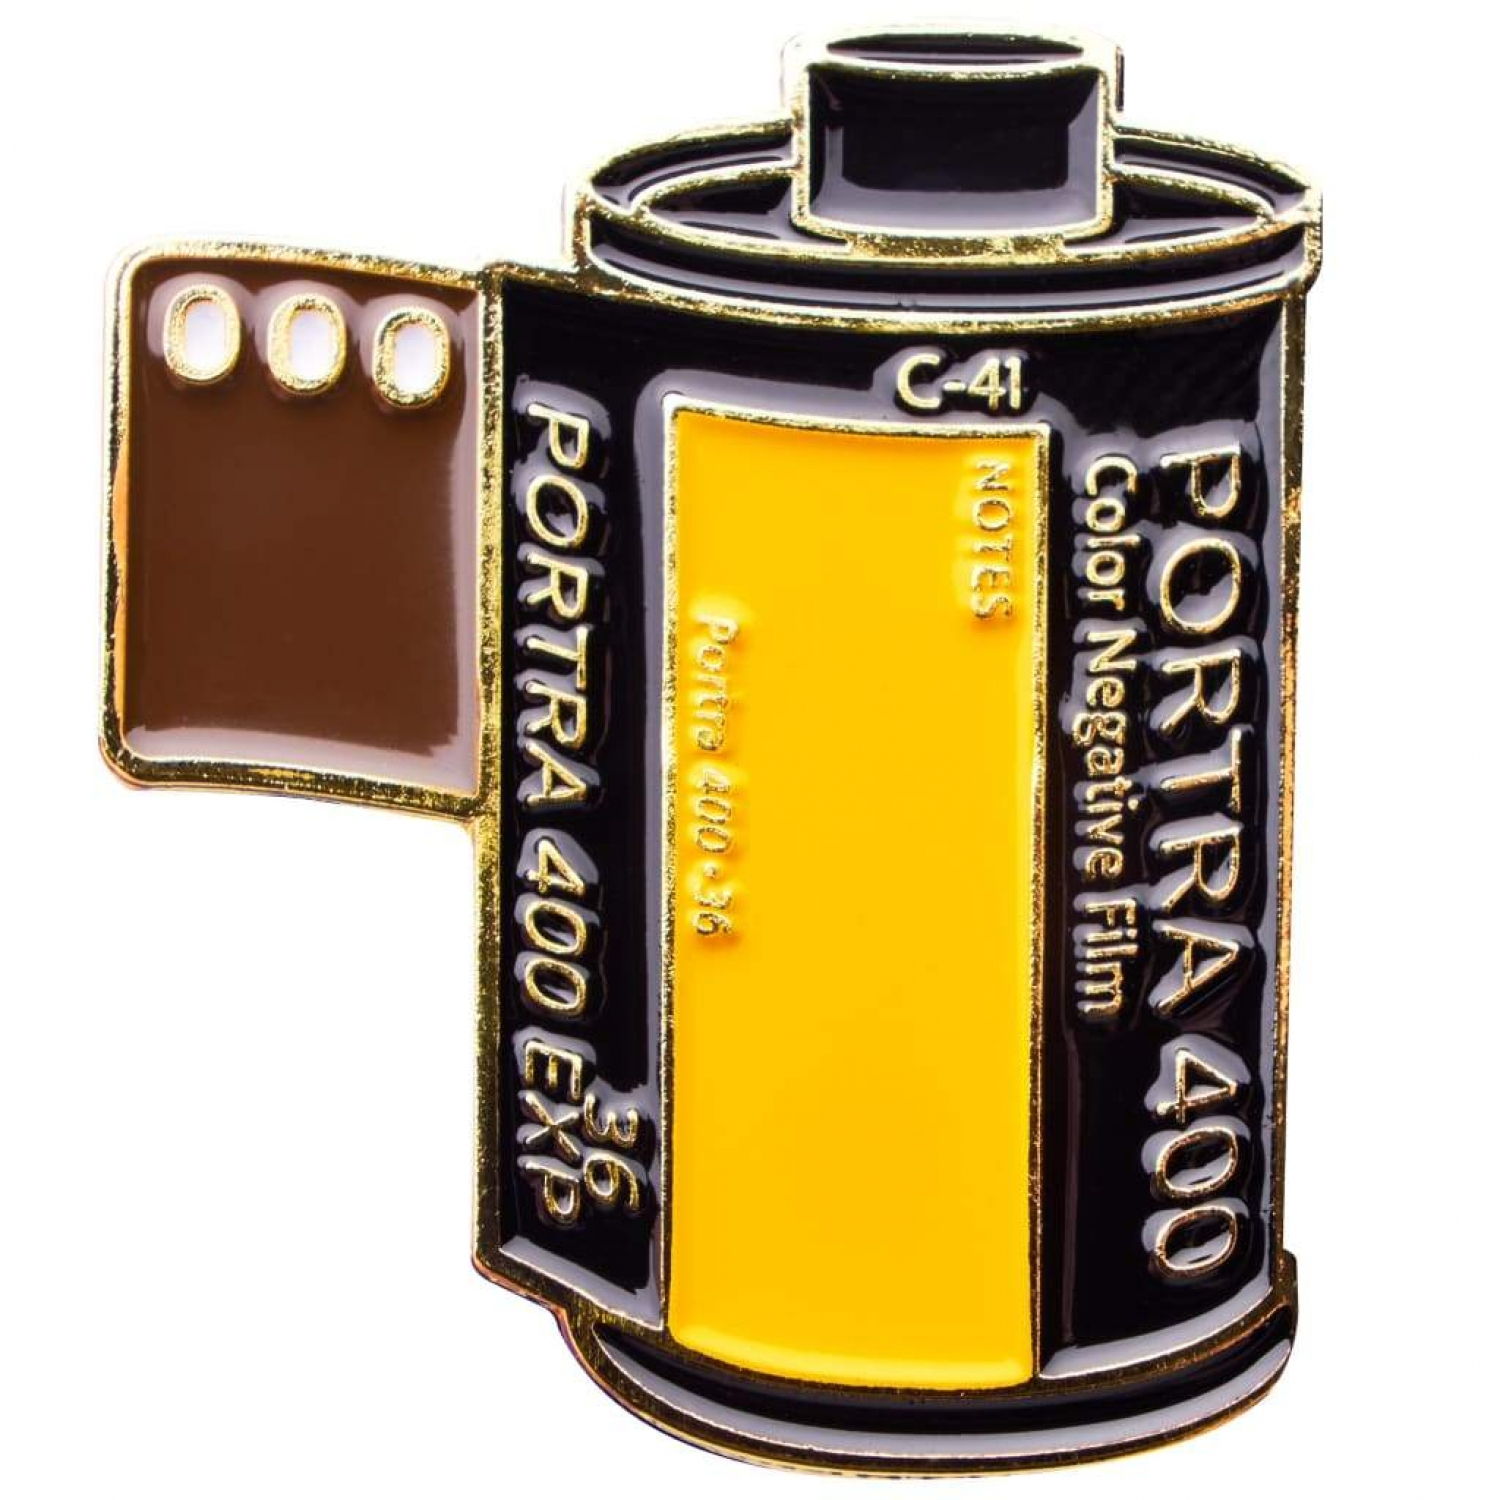 Film Canister #2 Pin